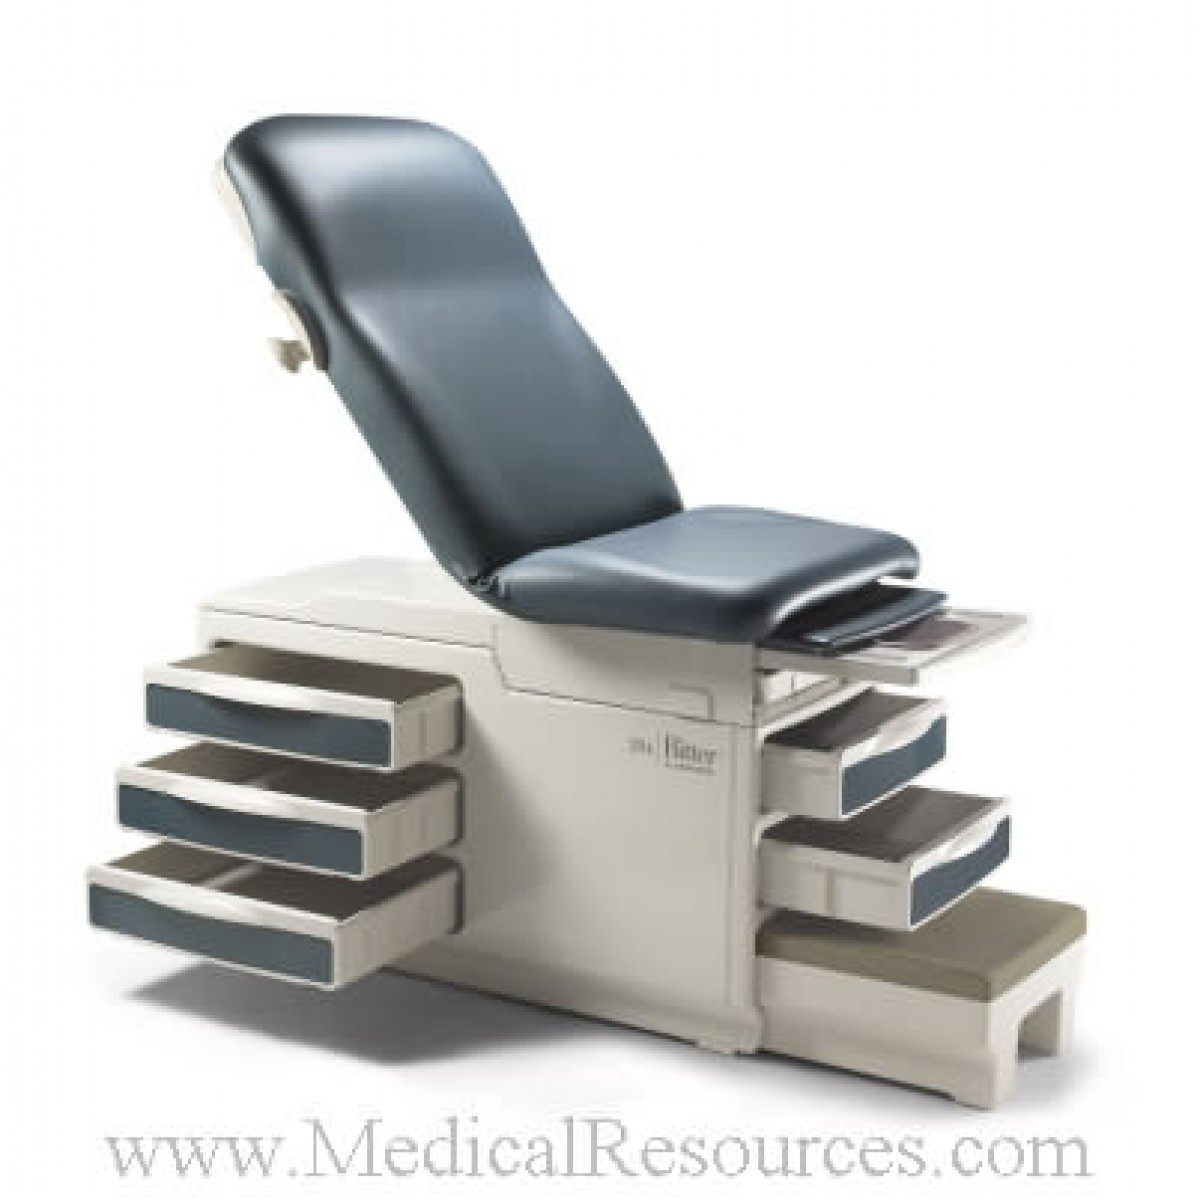 Ritter 204 Manual Exam Tables Sale Price